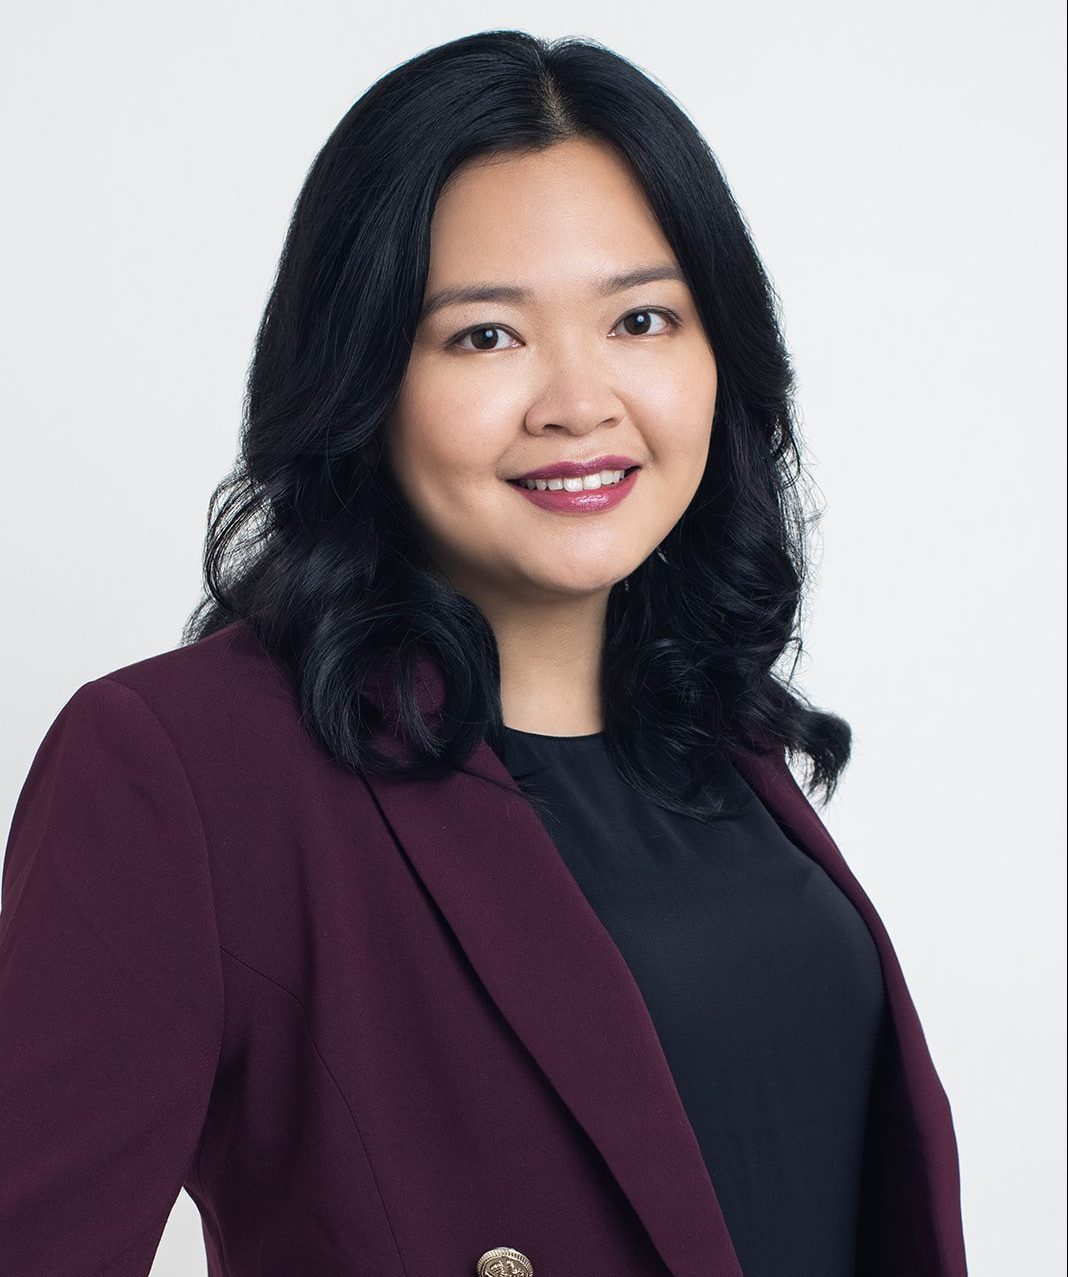 Dr. Susanty Tay